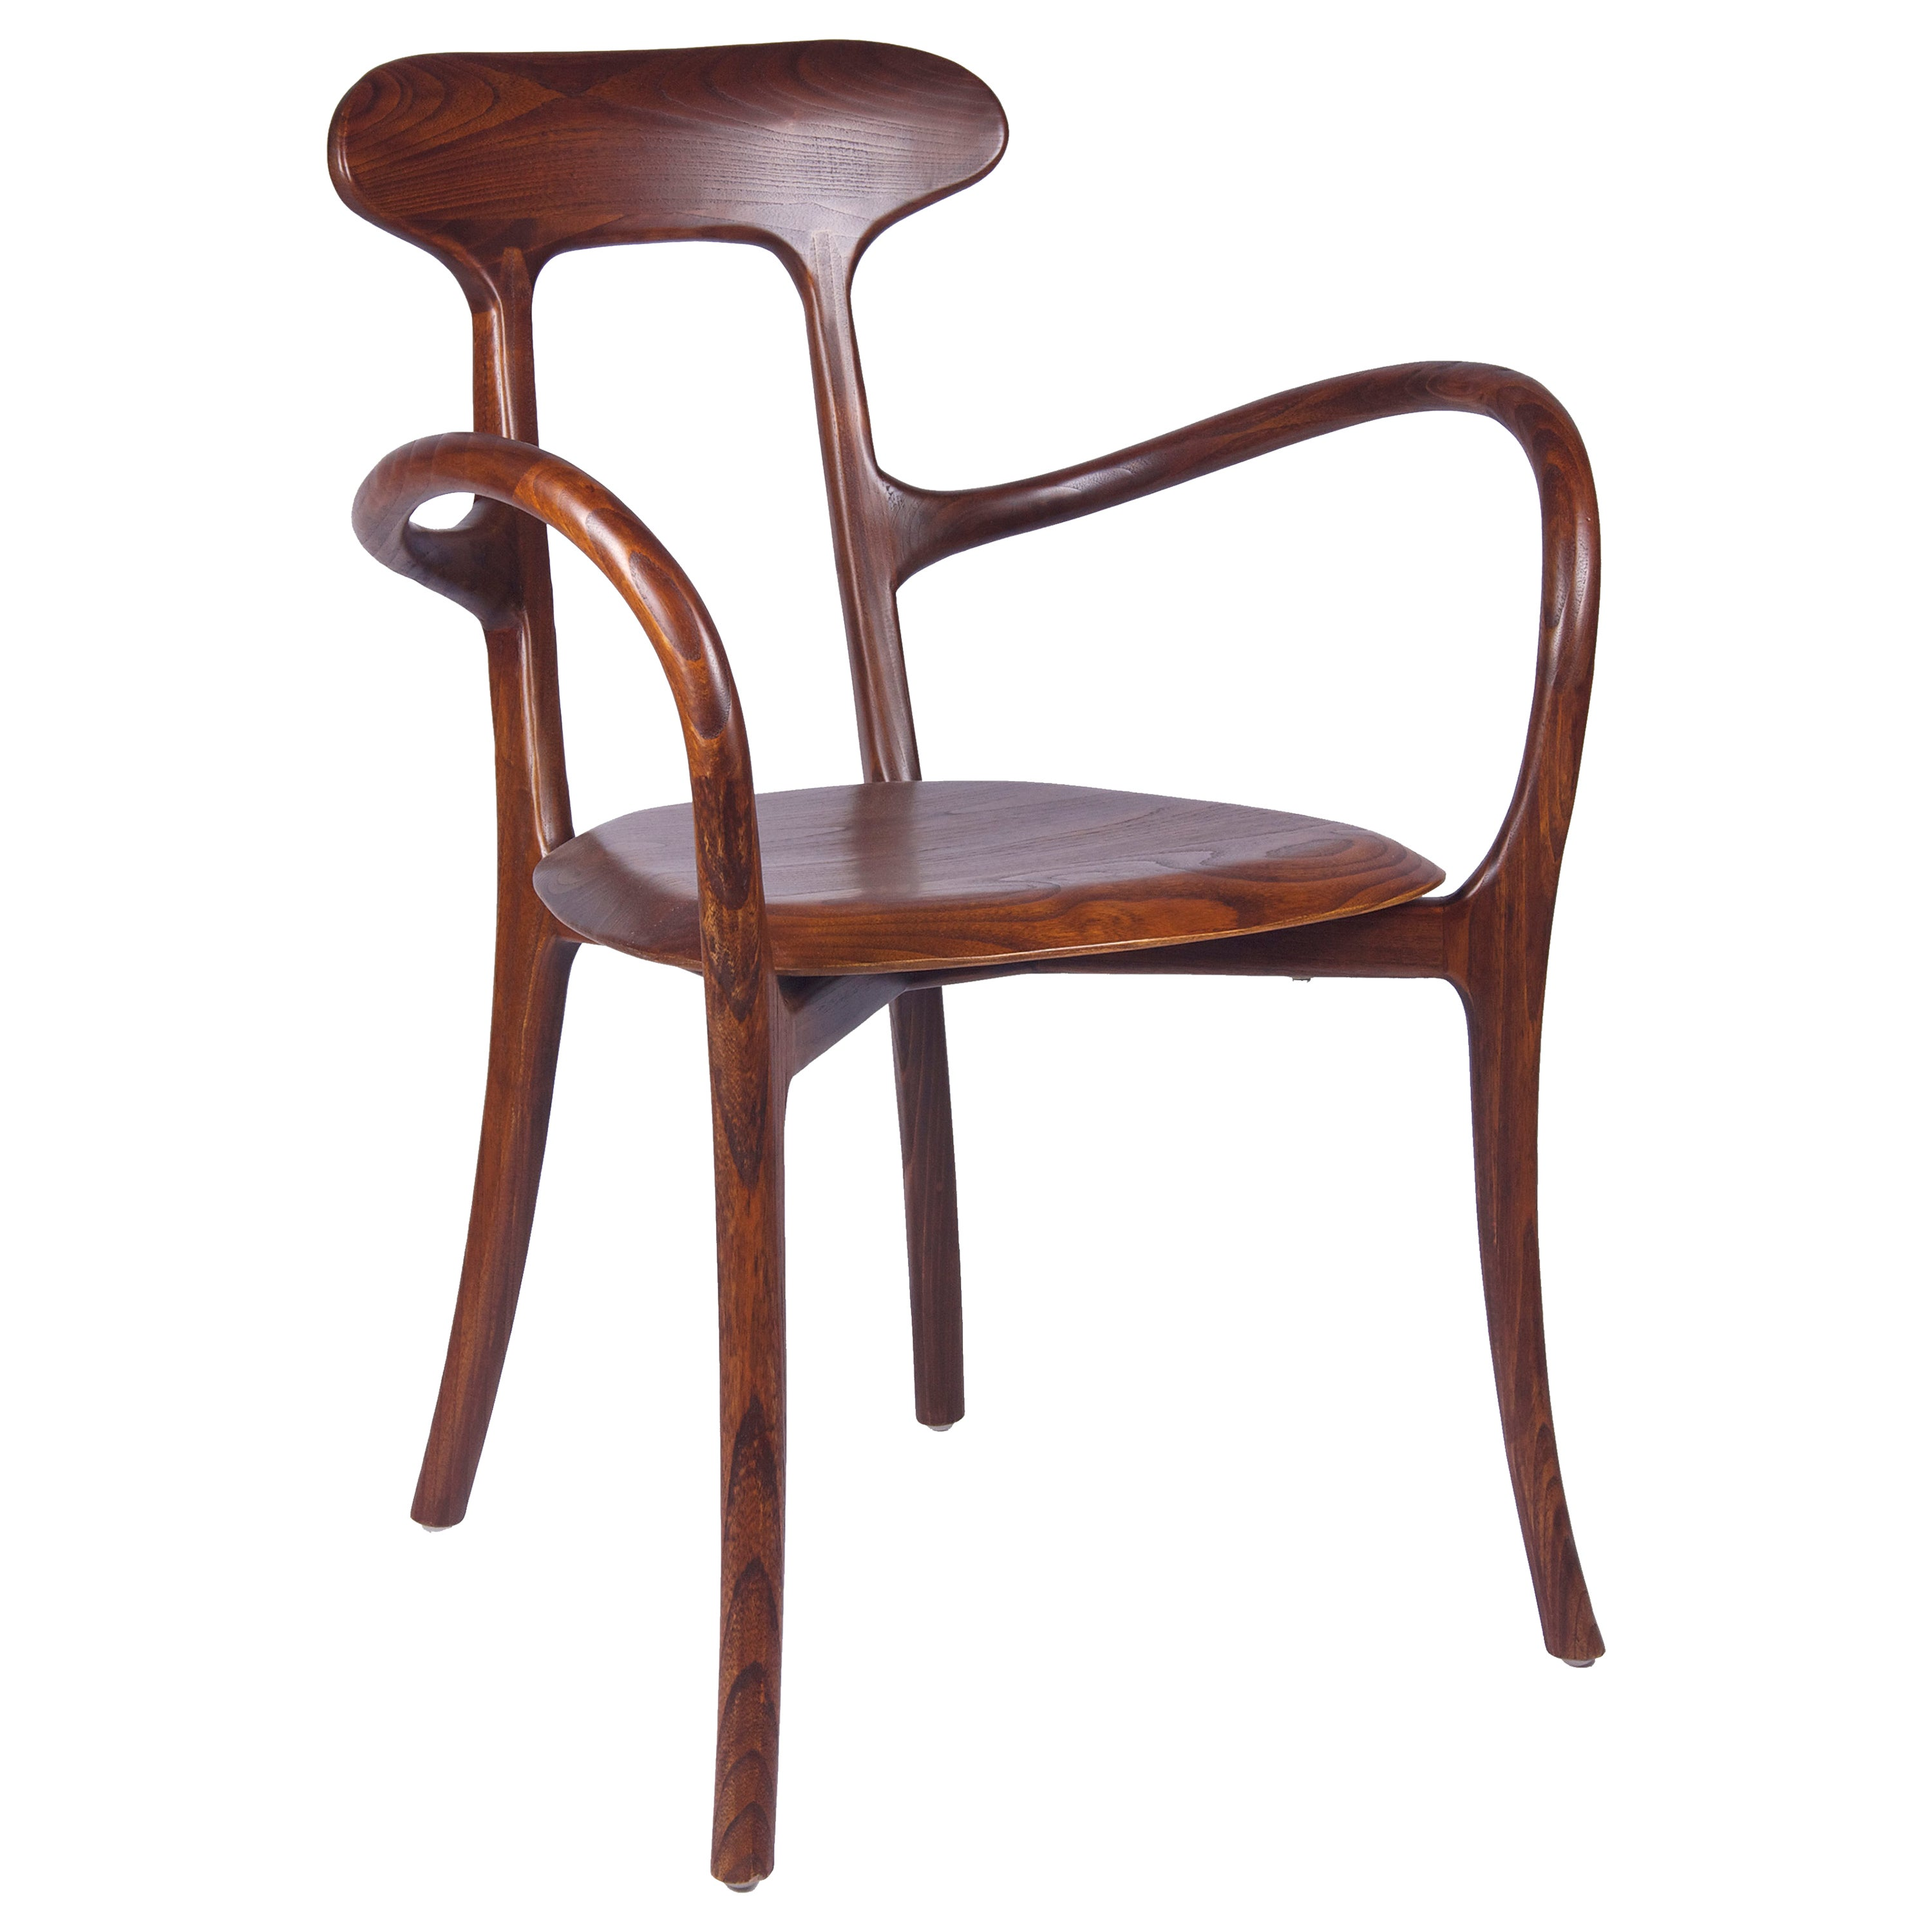 New Bentwood Armchair with Wood Seat and Back